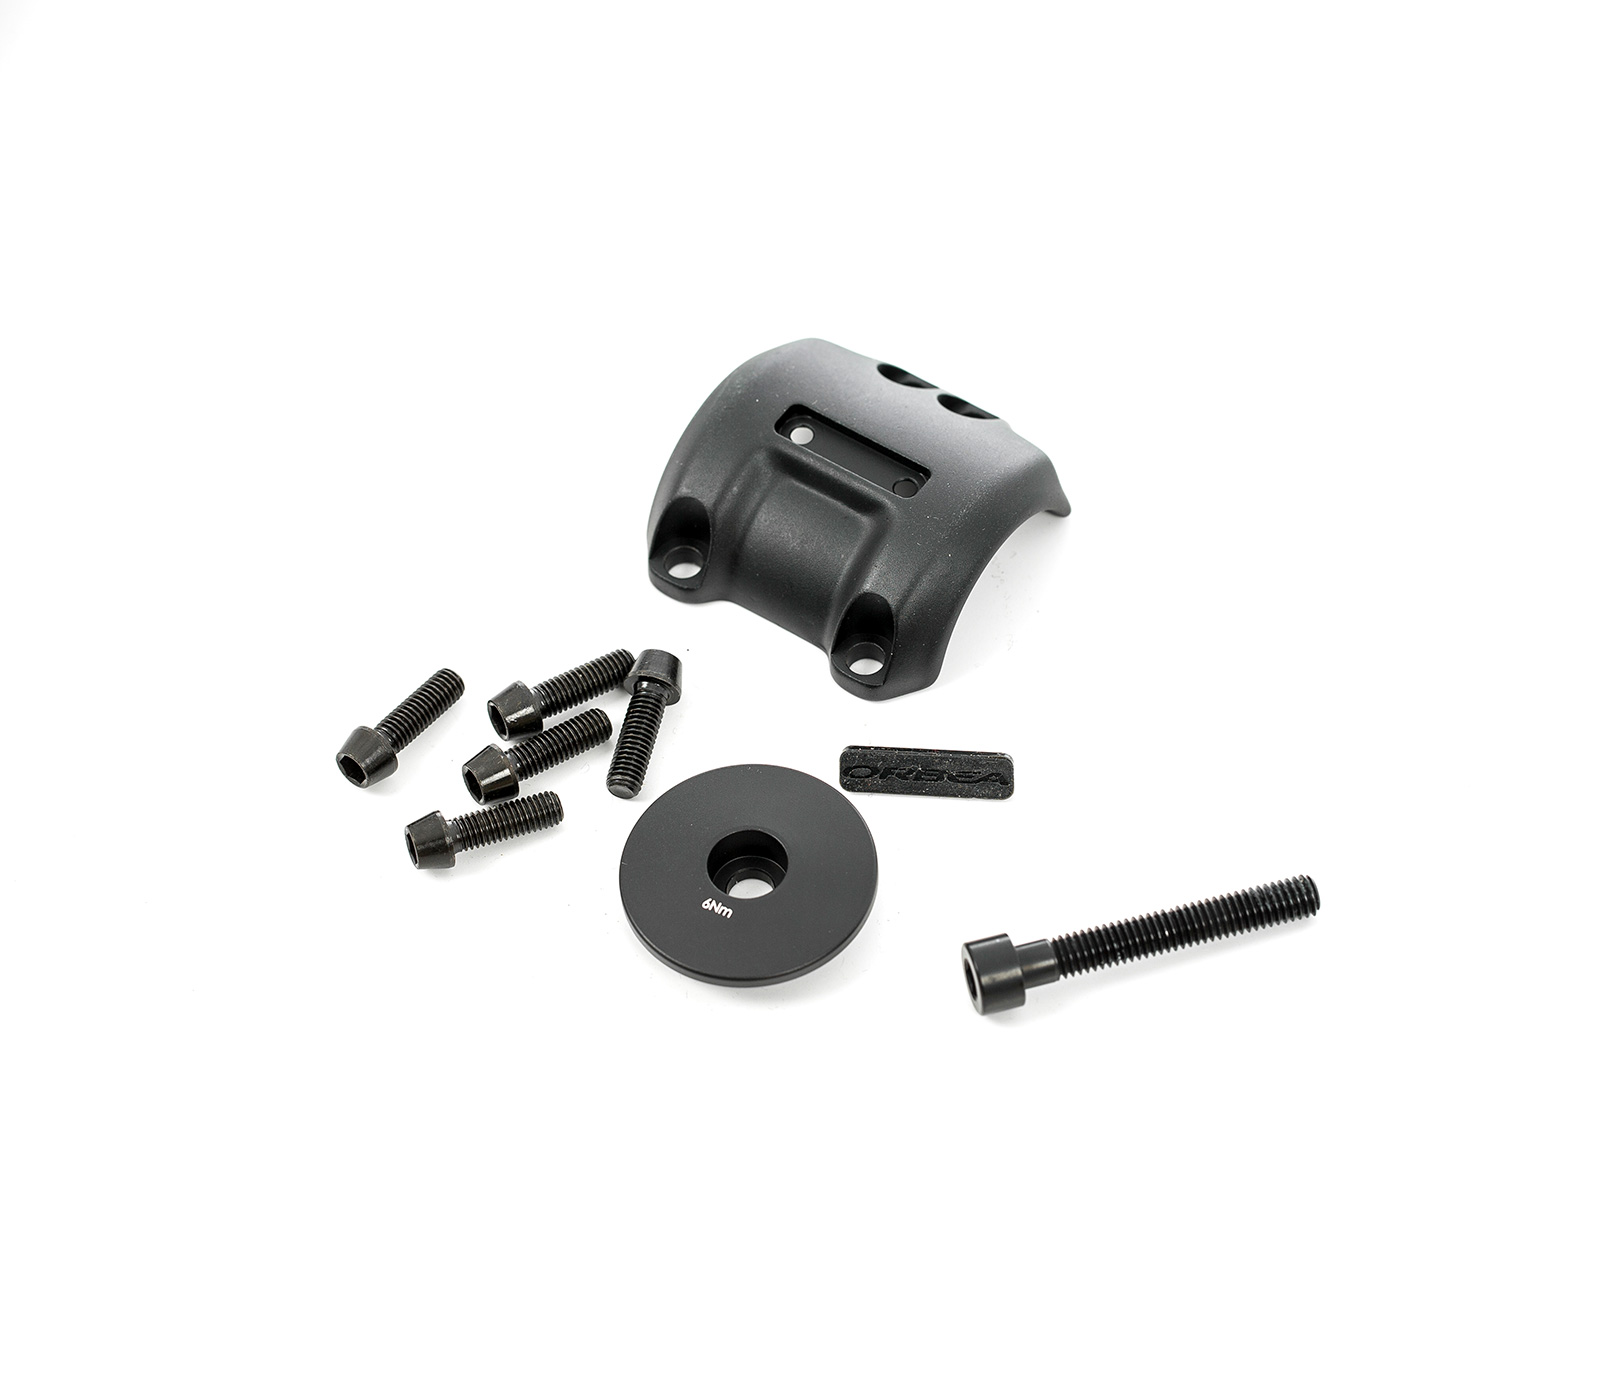 ICR01 STEM HARDWARE KIT